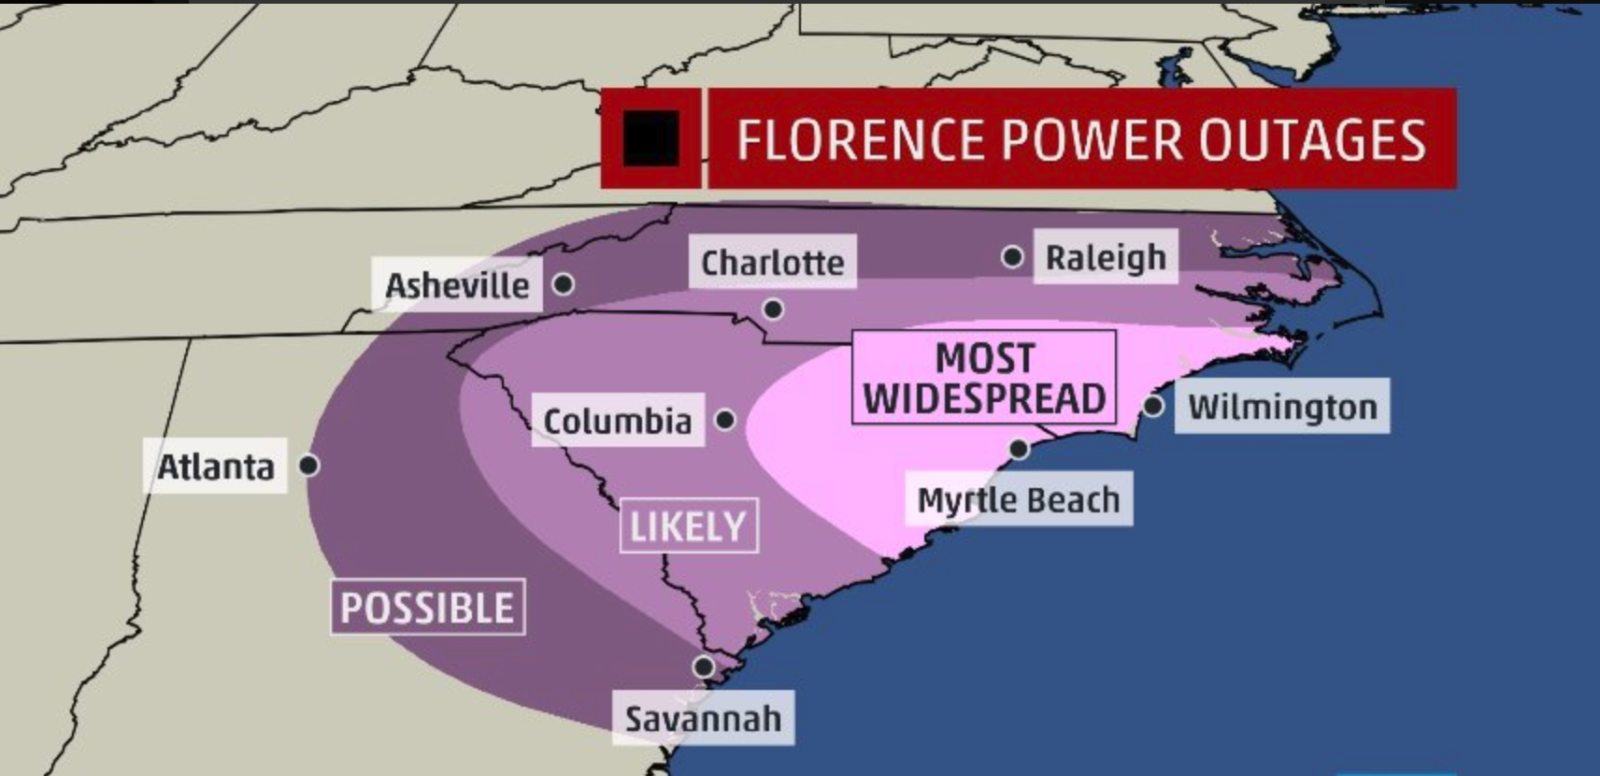 hurricane florence power outage map